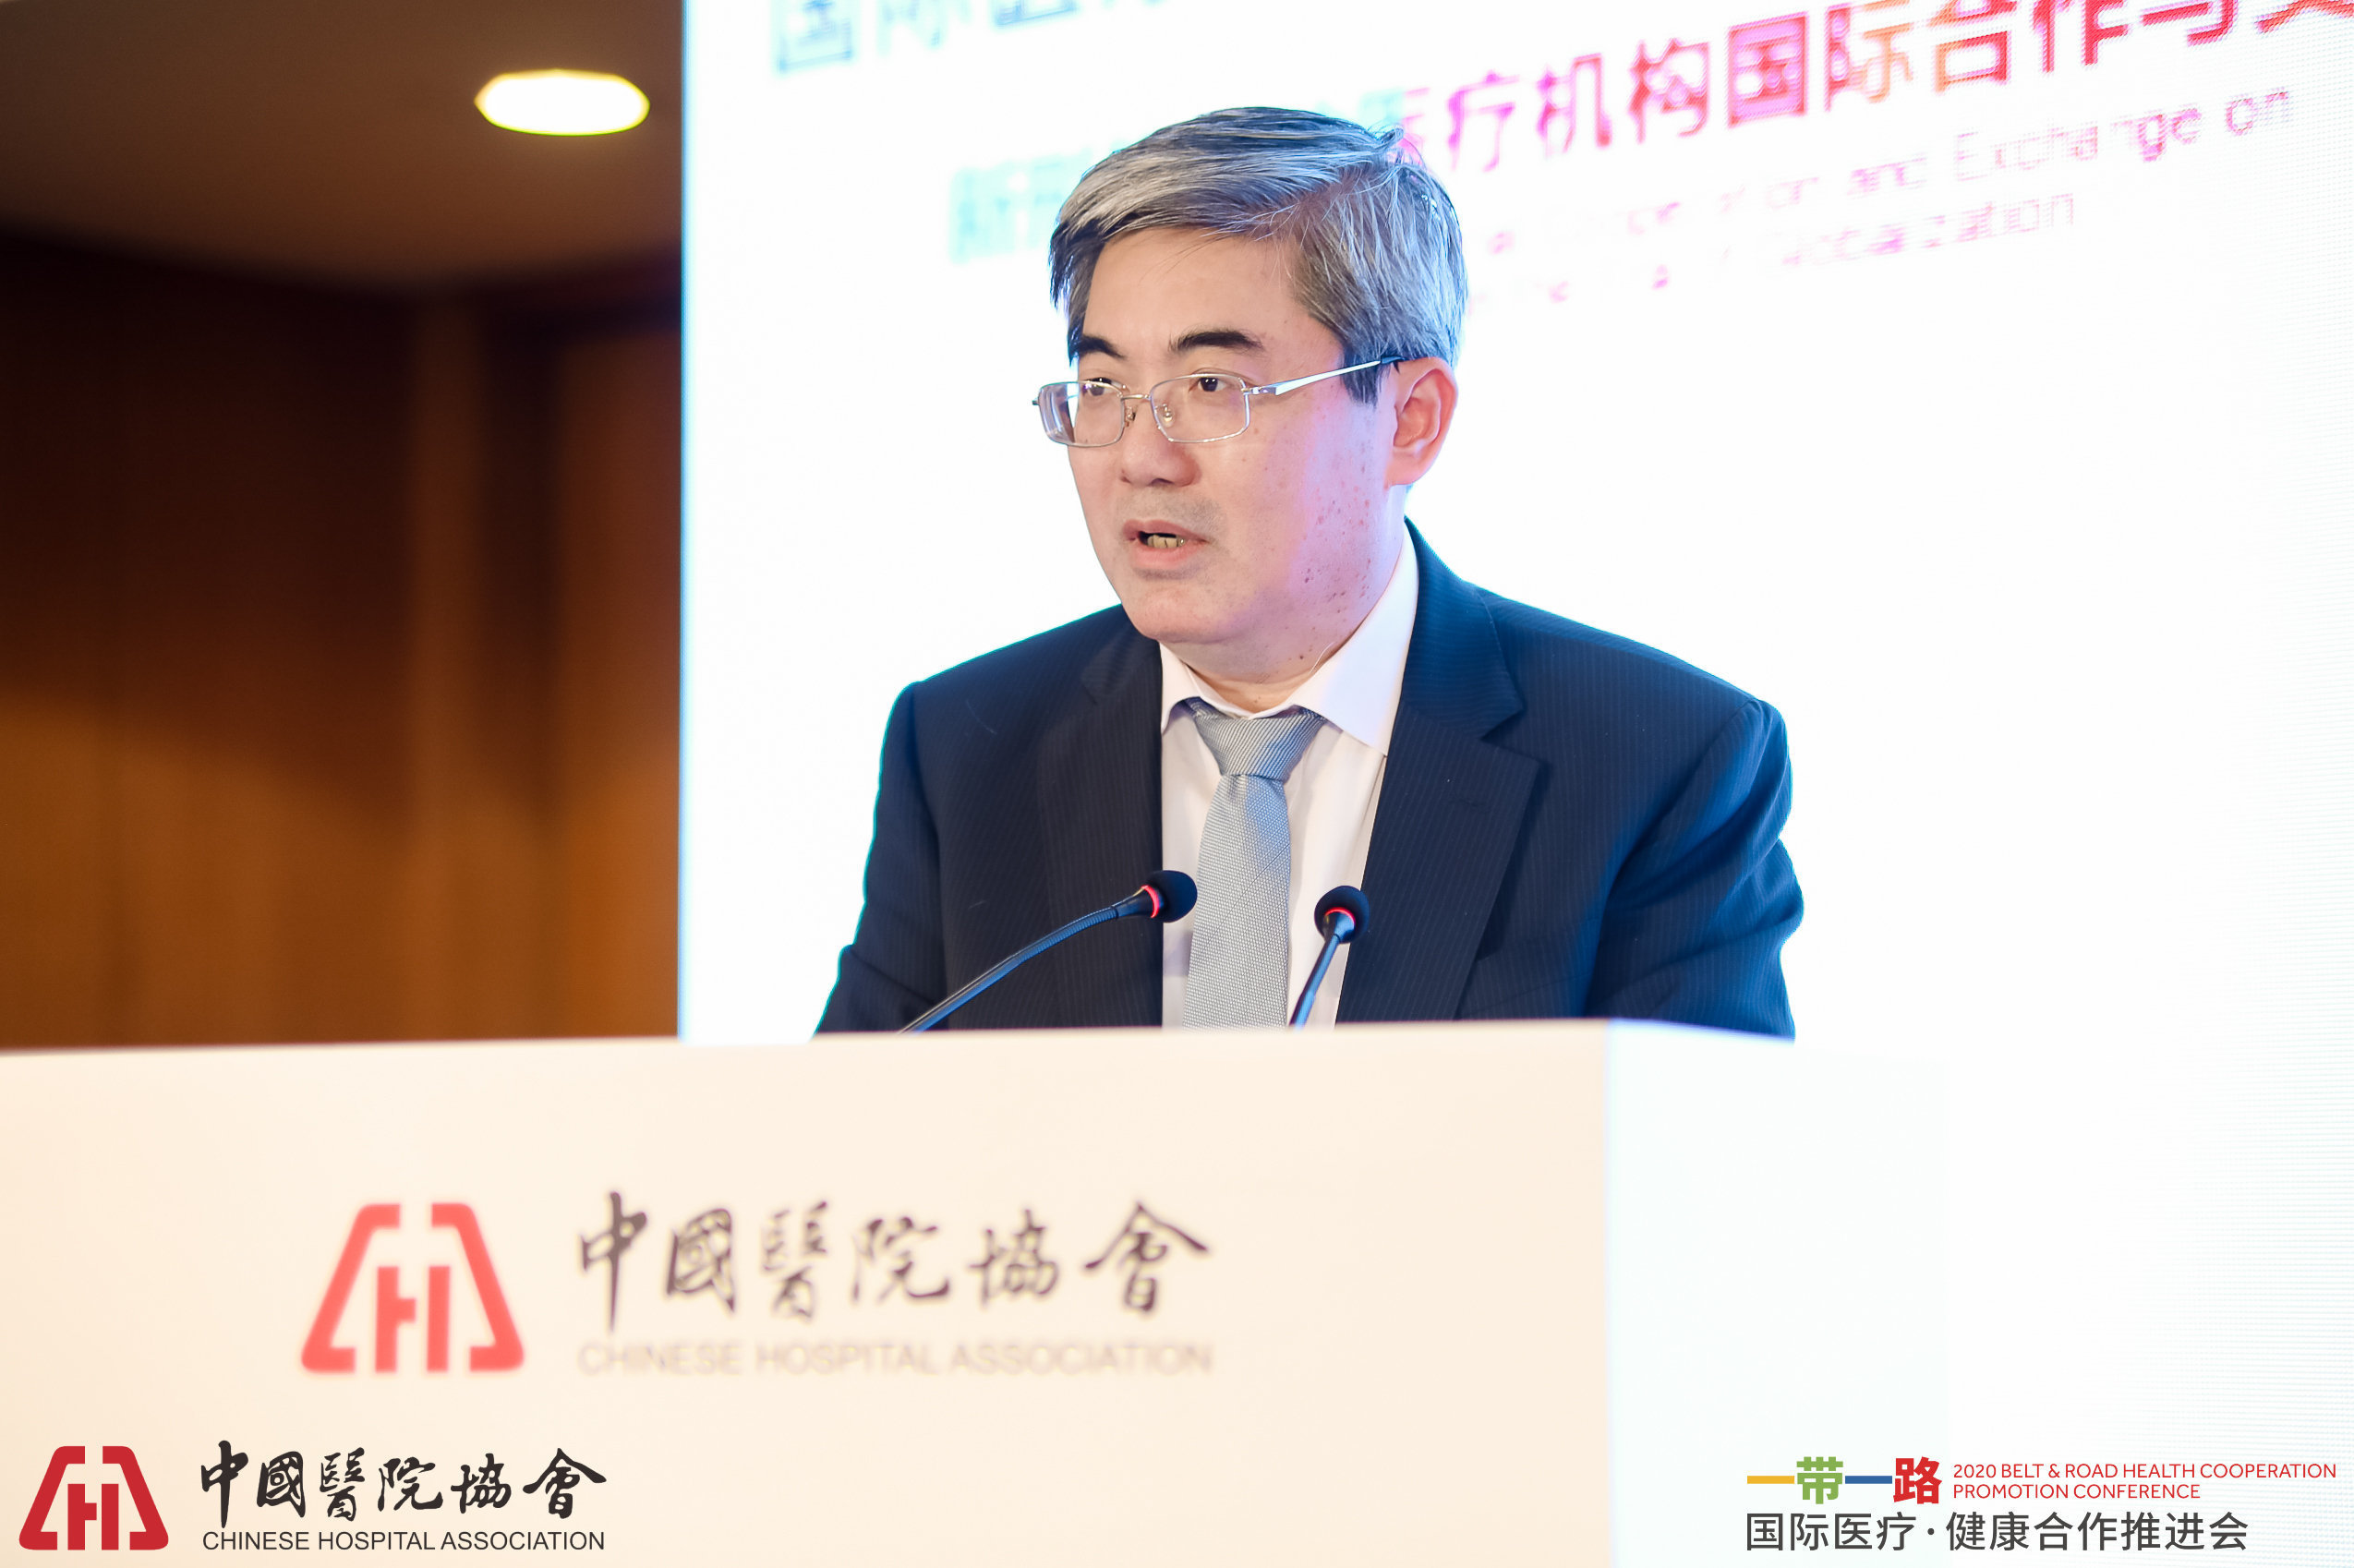 International Conference for Healthcare Cooperation in Nanjing